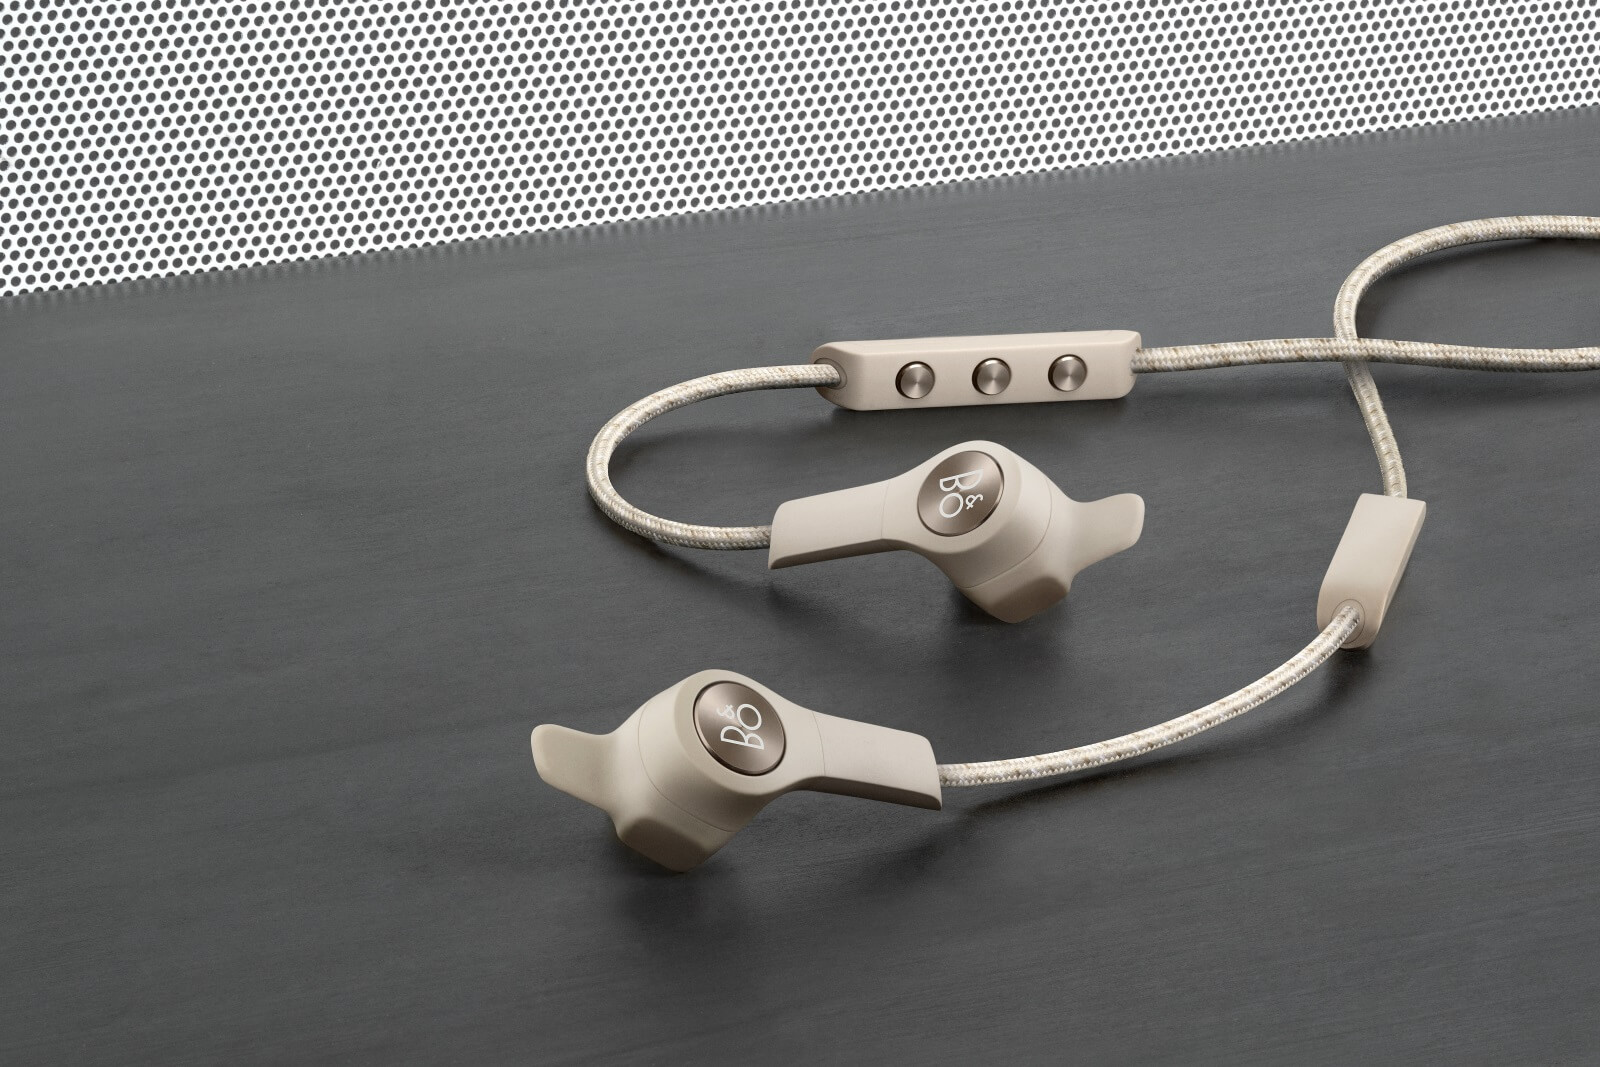 BeoPlay E6 - Update des BeoPlay H5